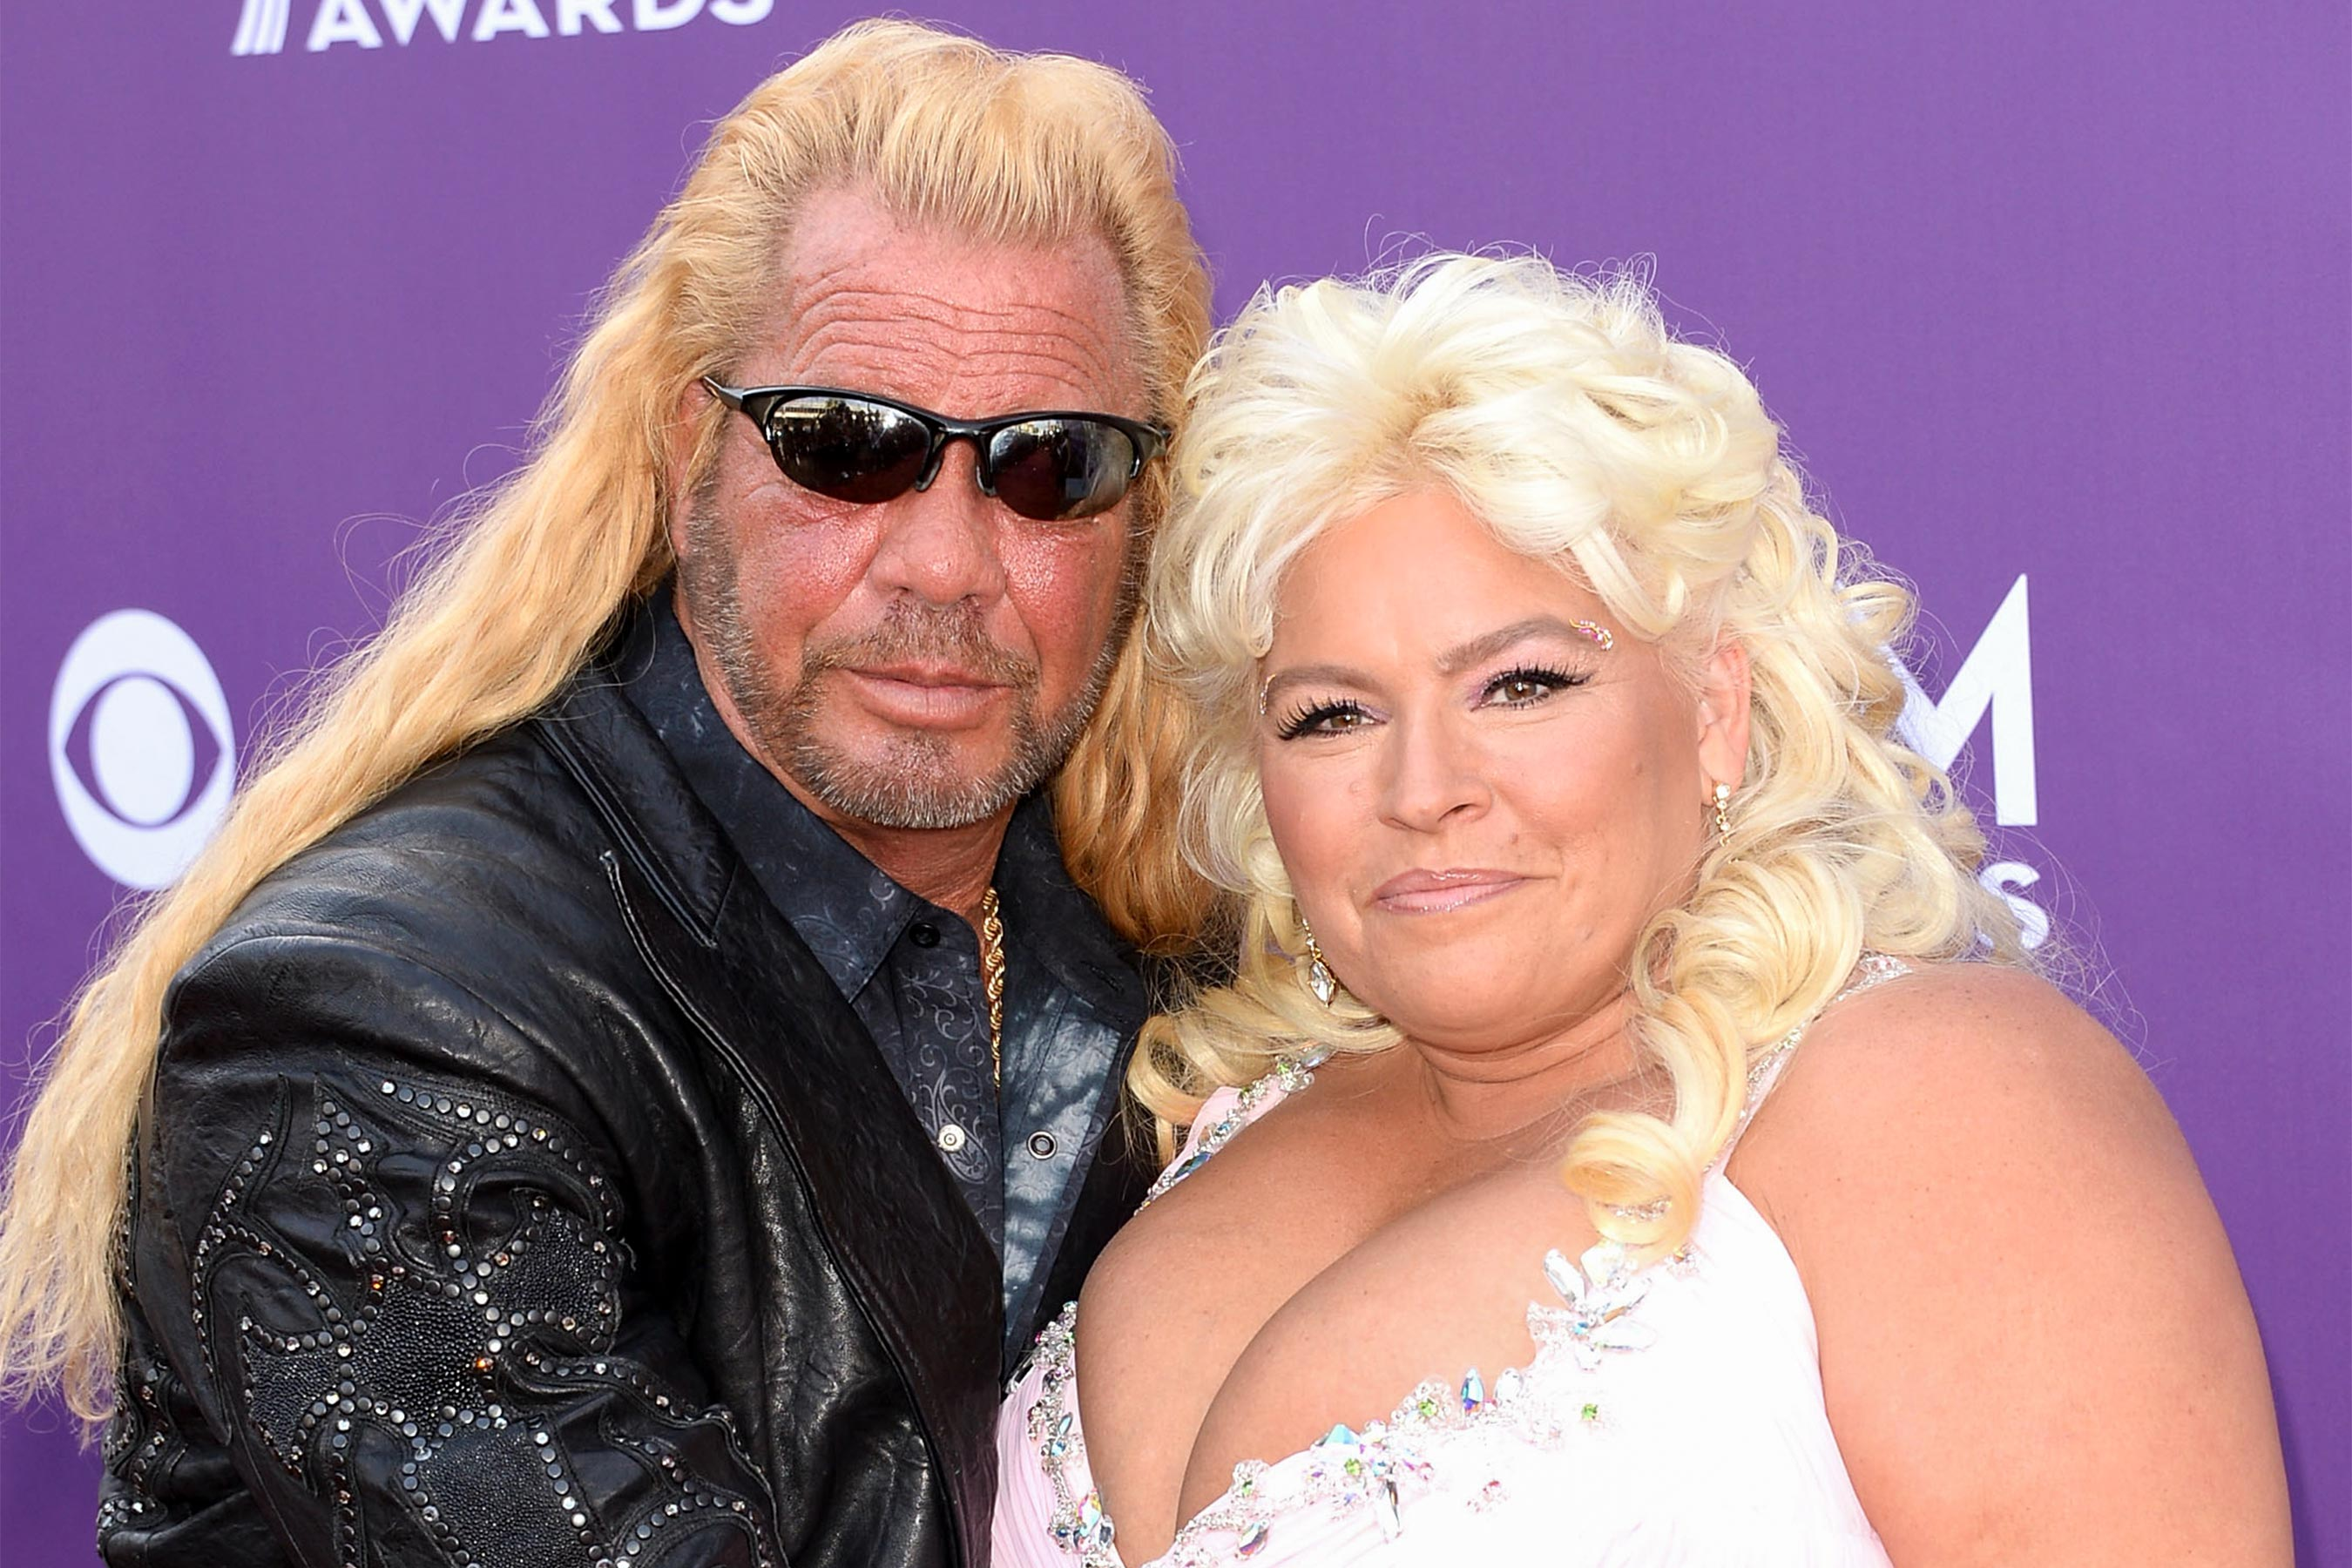 'Dog the Bounty Hunter' Star Beth Chapman Died Battling Stage II Throat Cancer